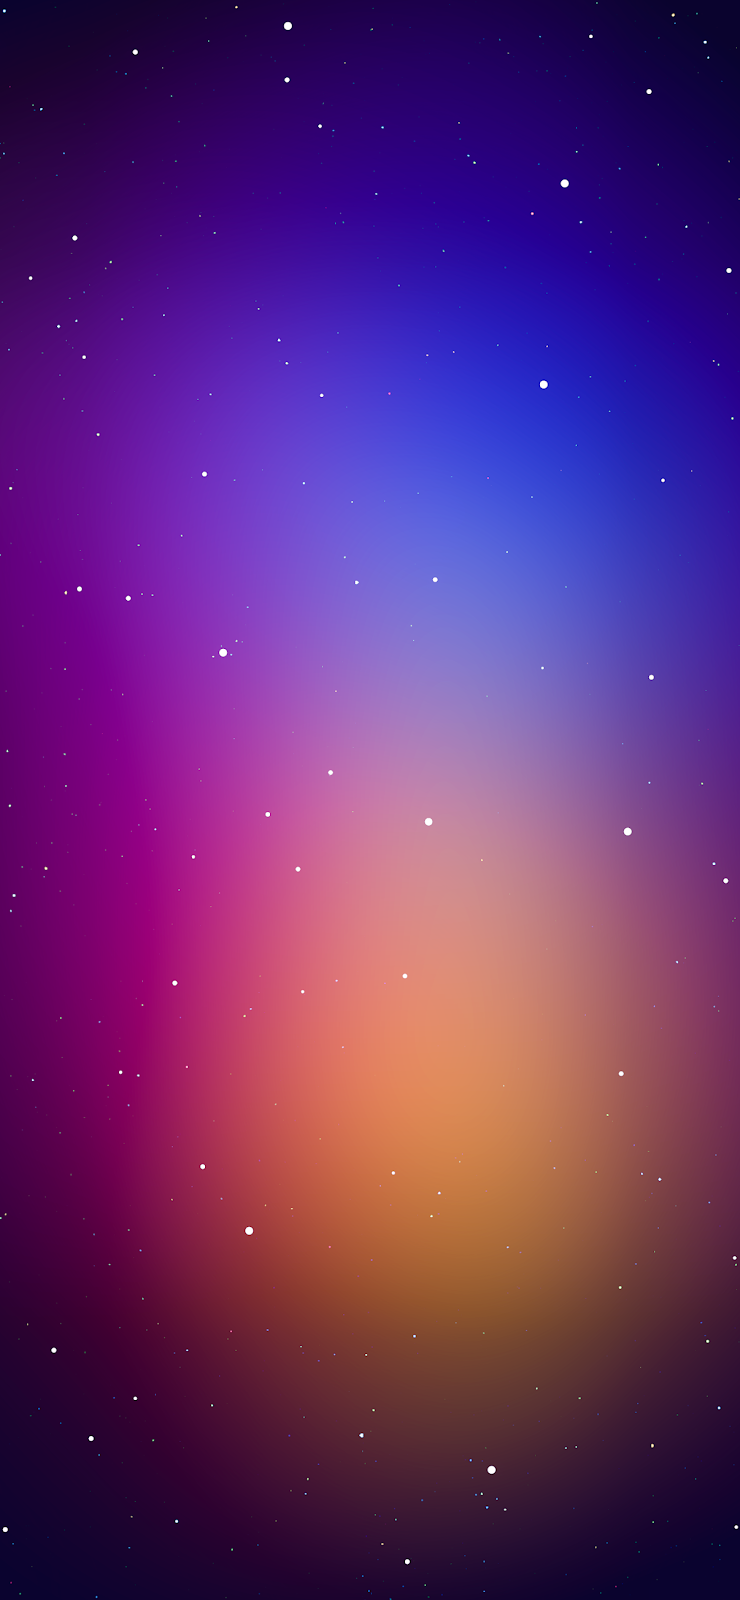 Gradient With Stars Wallpaper Iphone Android Background Followme Ipod Wallpaper Star Wallpaper Android Wallpaper